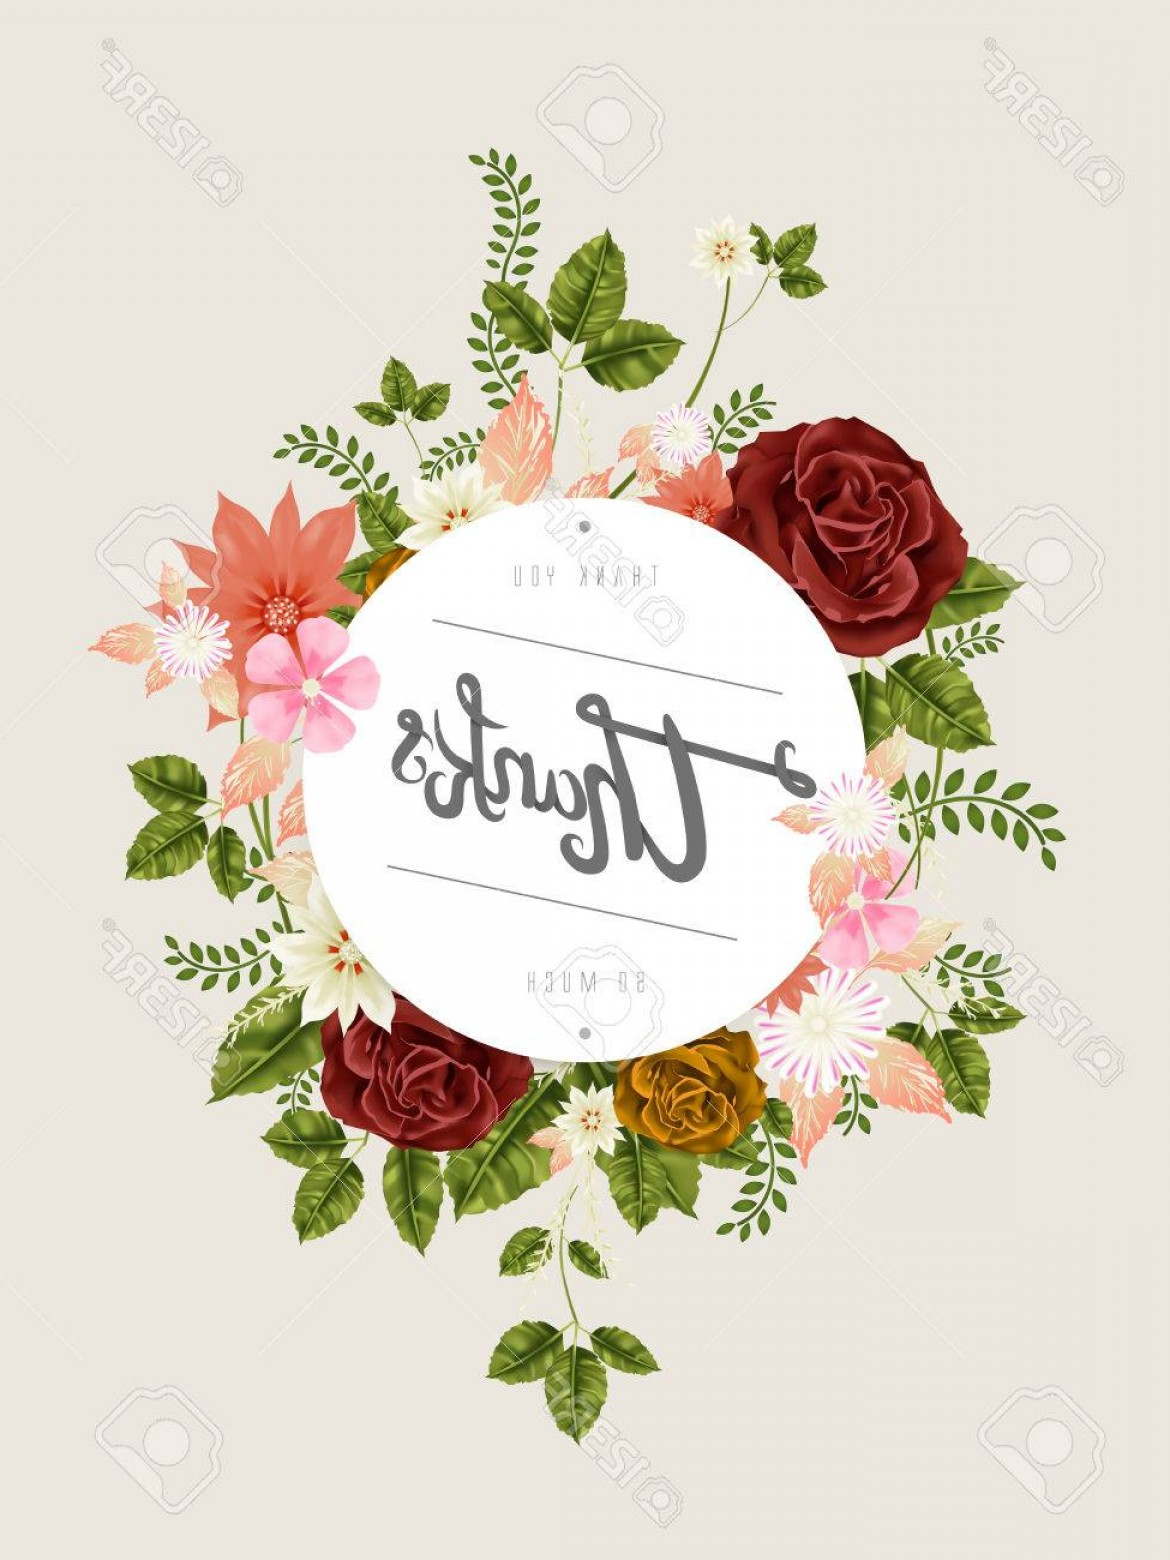 Floral Vector Calligraphy: Photostock Vector Elegant Thanks Calligraphy Design With Fantastic Floral Elements